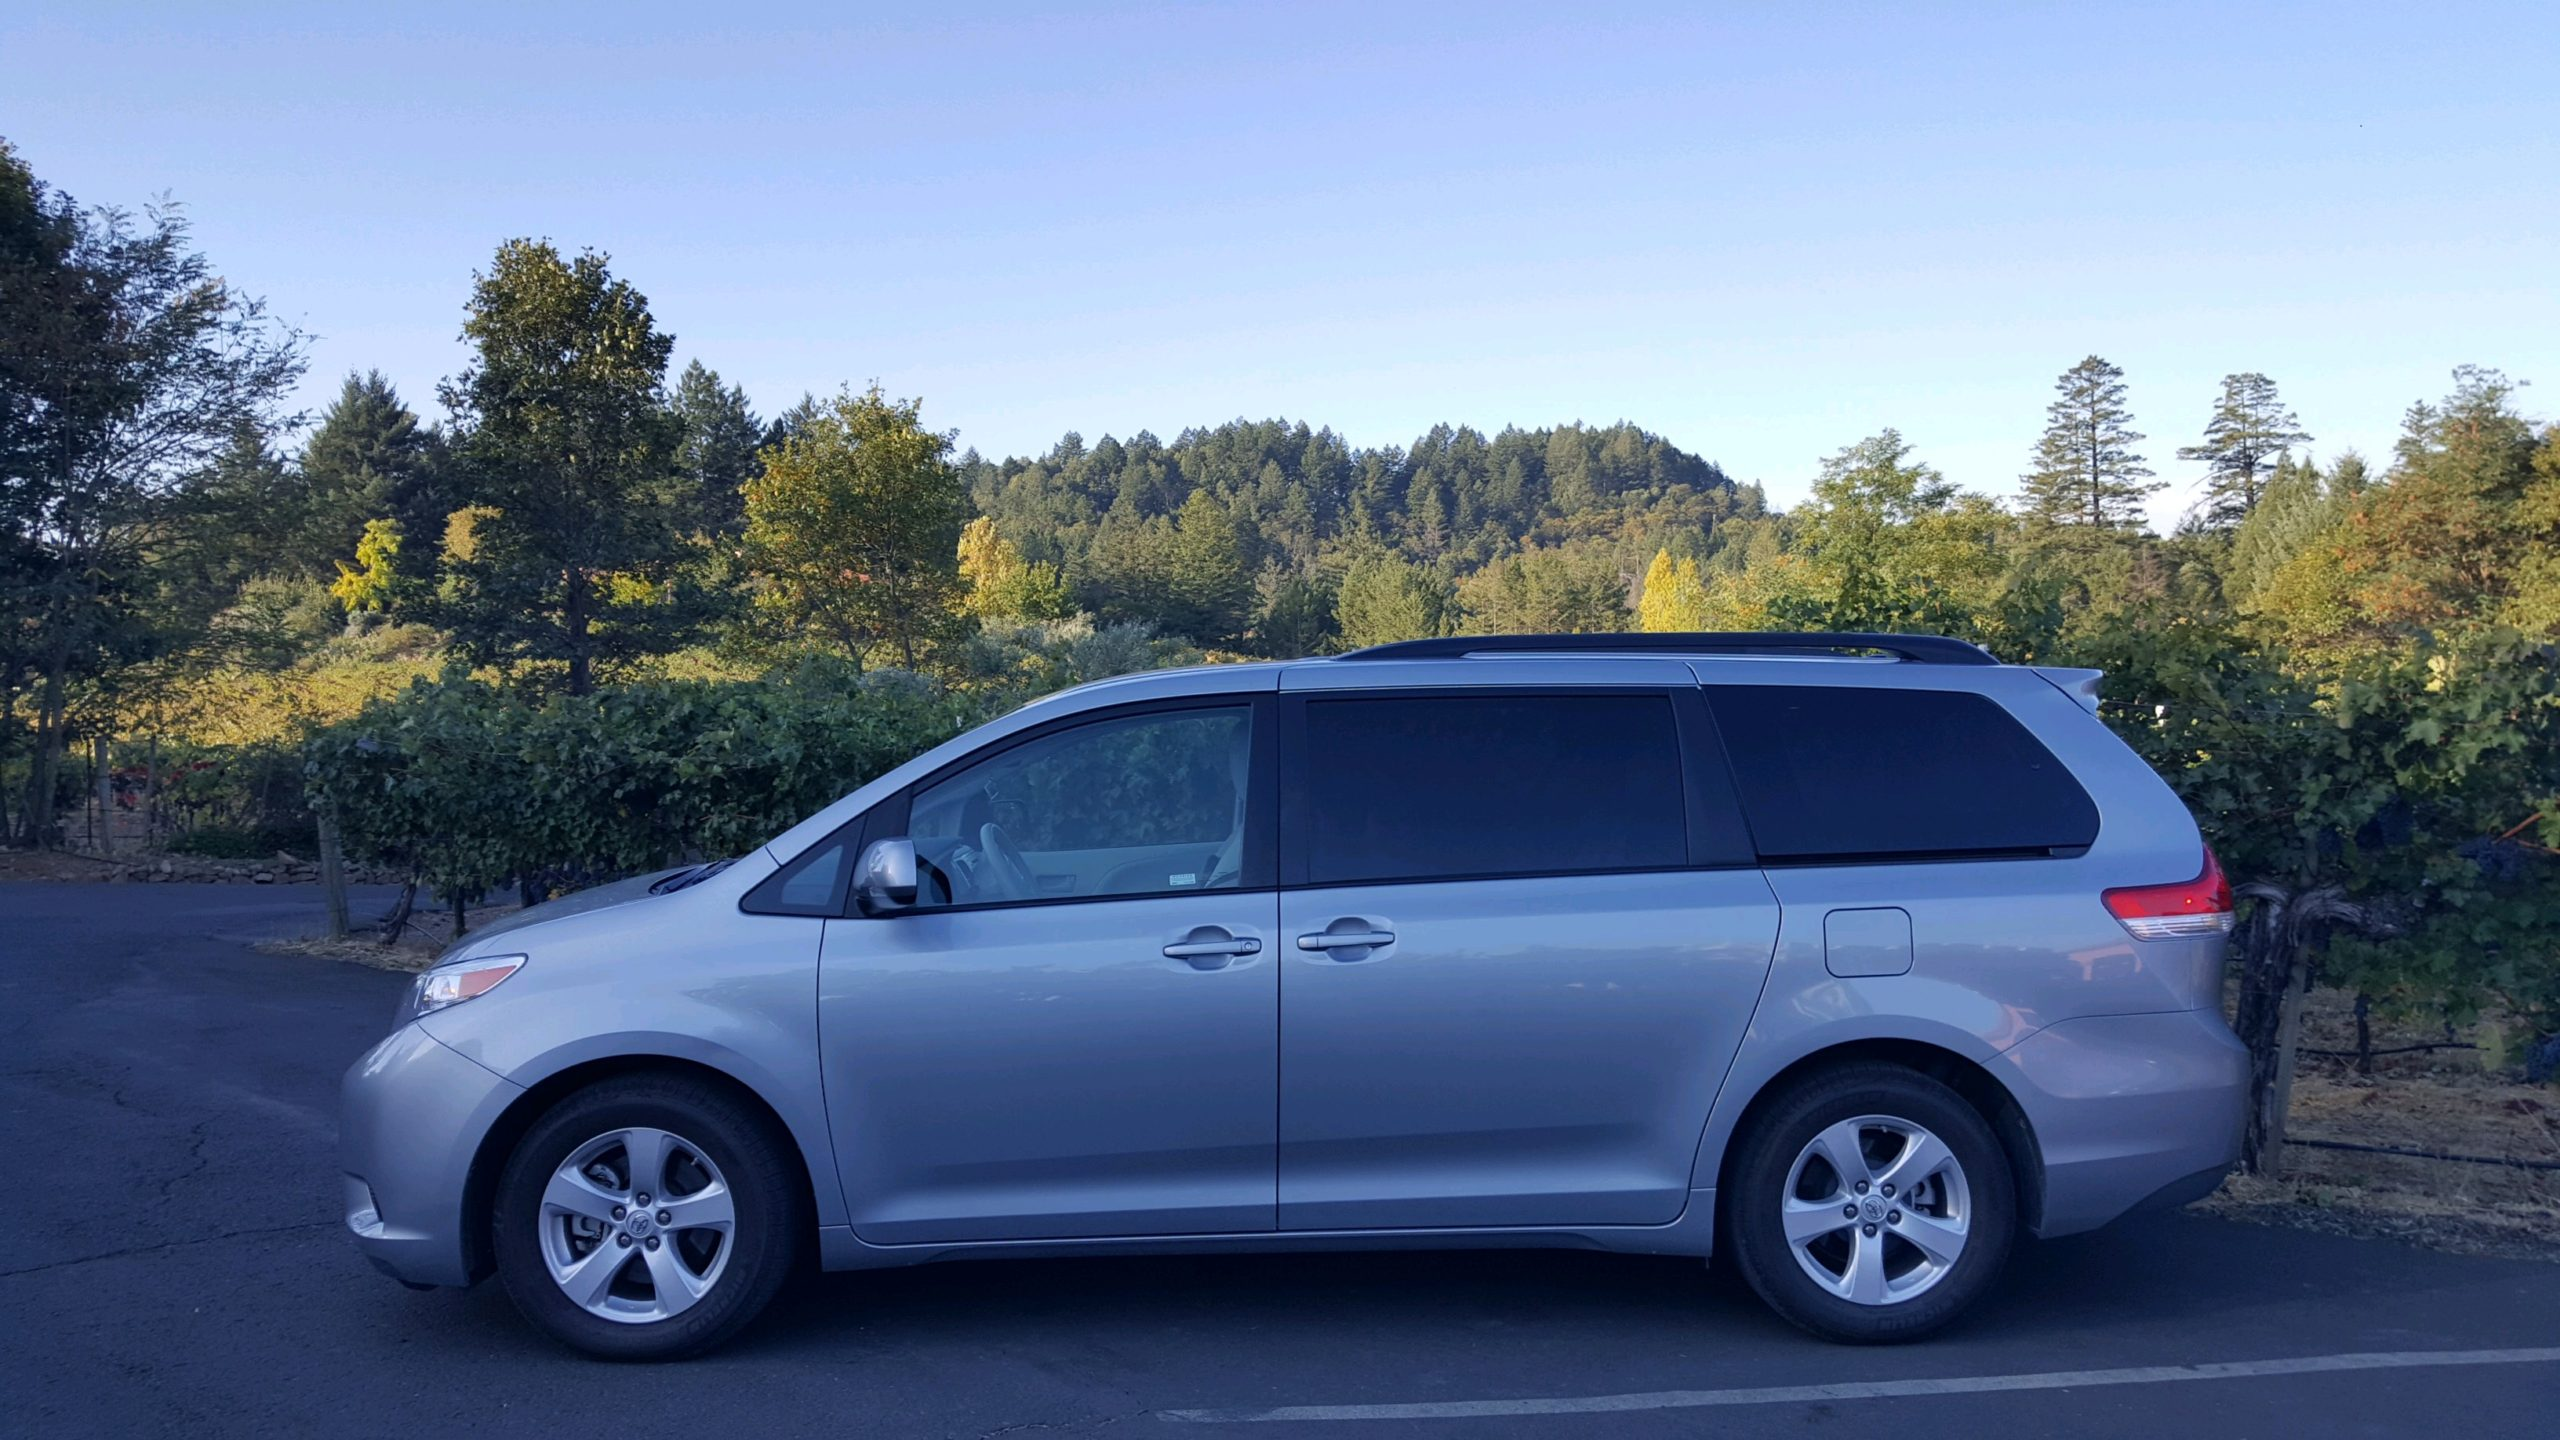 Toyota Sienna Van - Seats 7 Guests. $60 an hour Credit Card or $55 an hour cash!